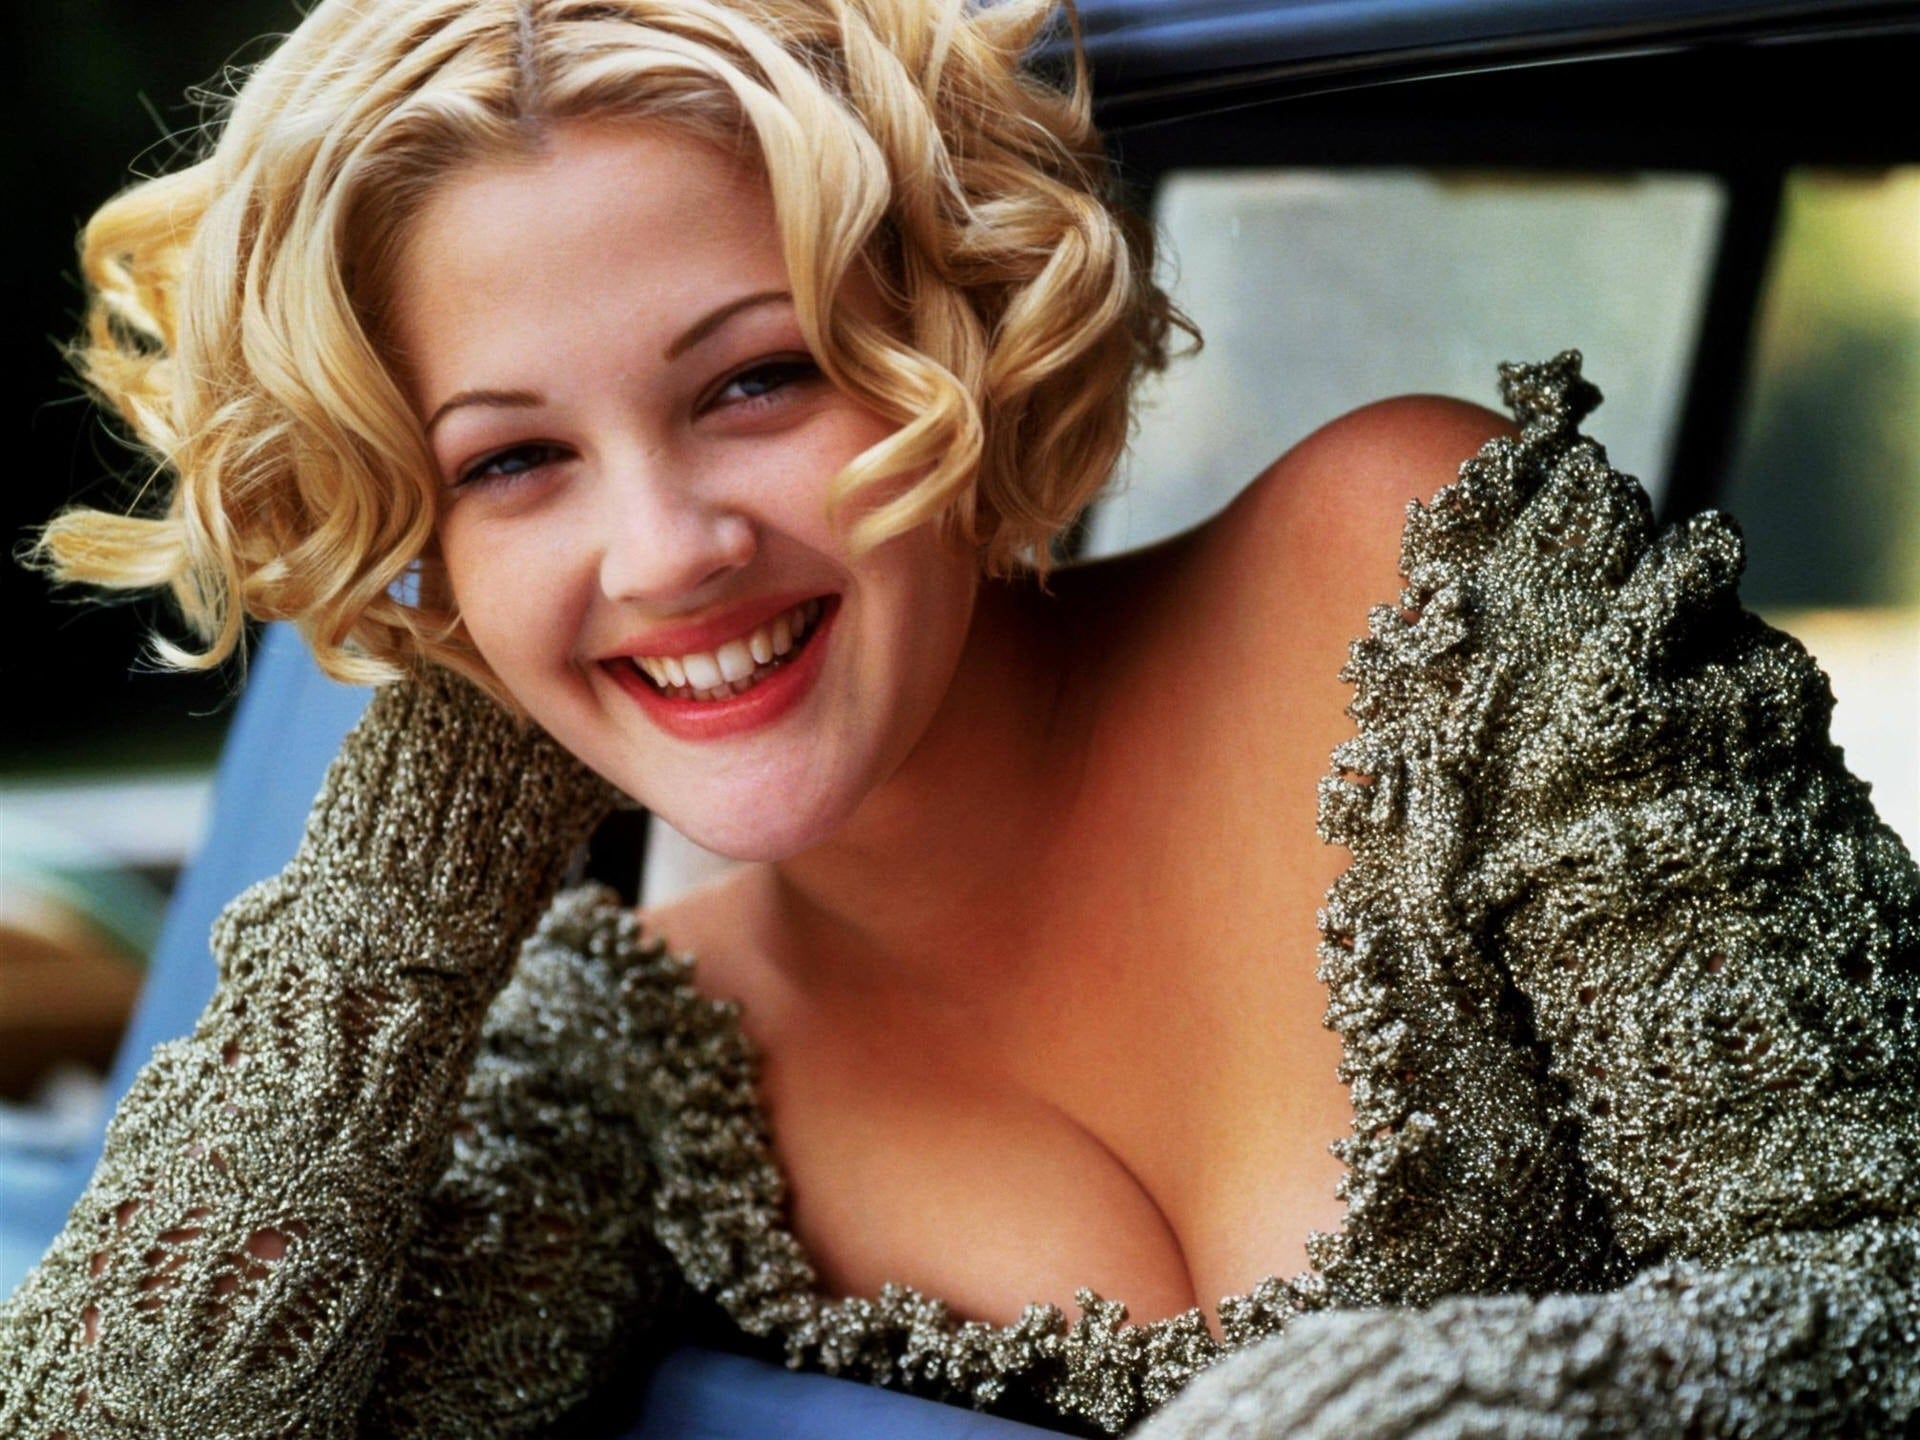 drew barrymore hot photo